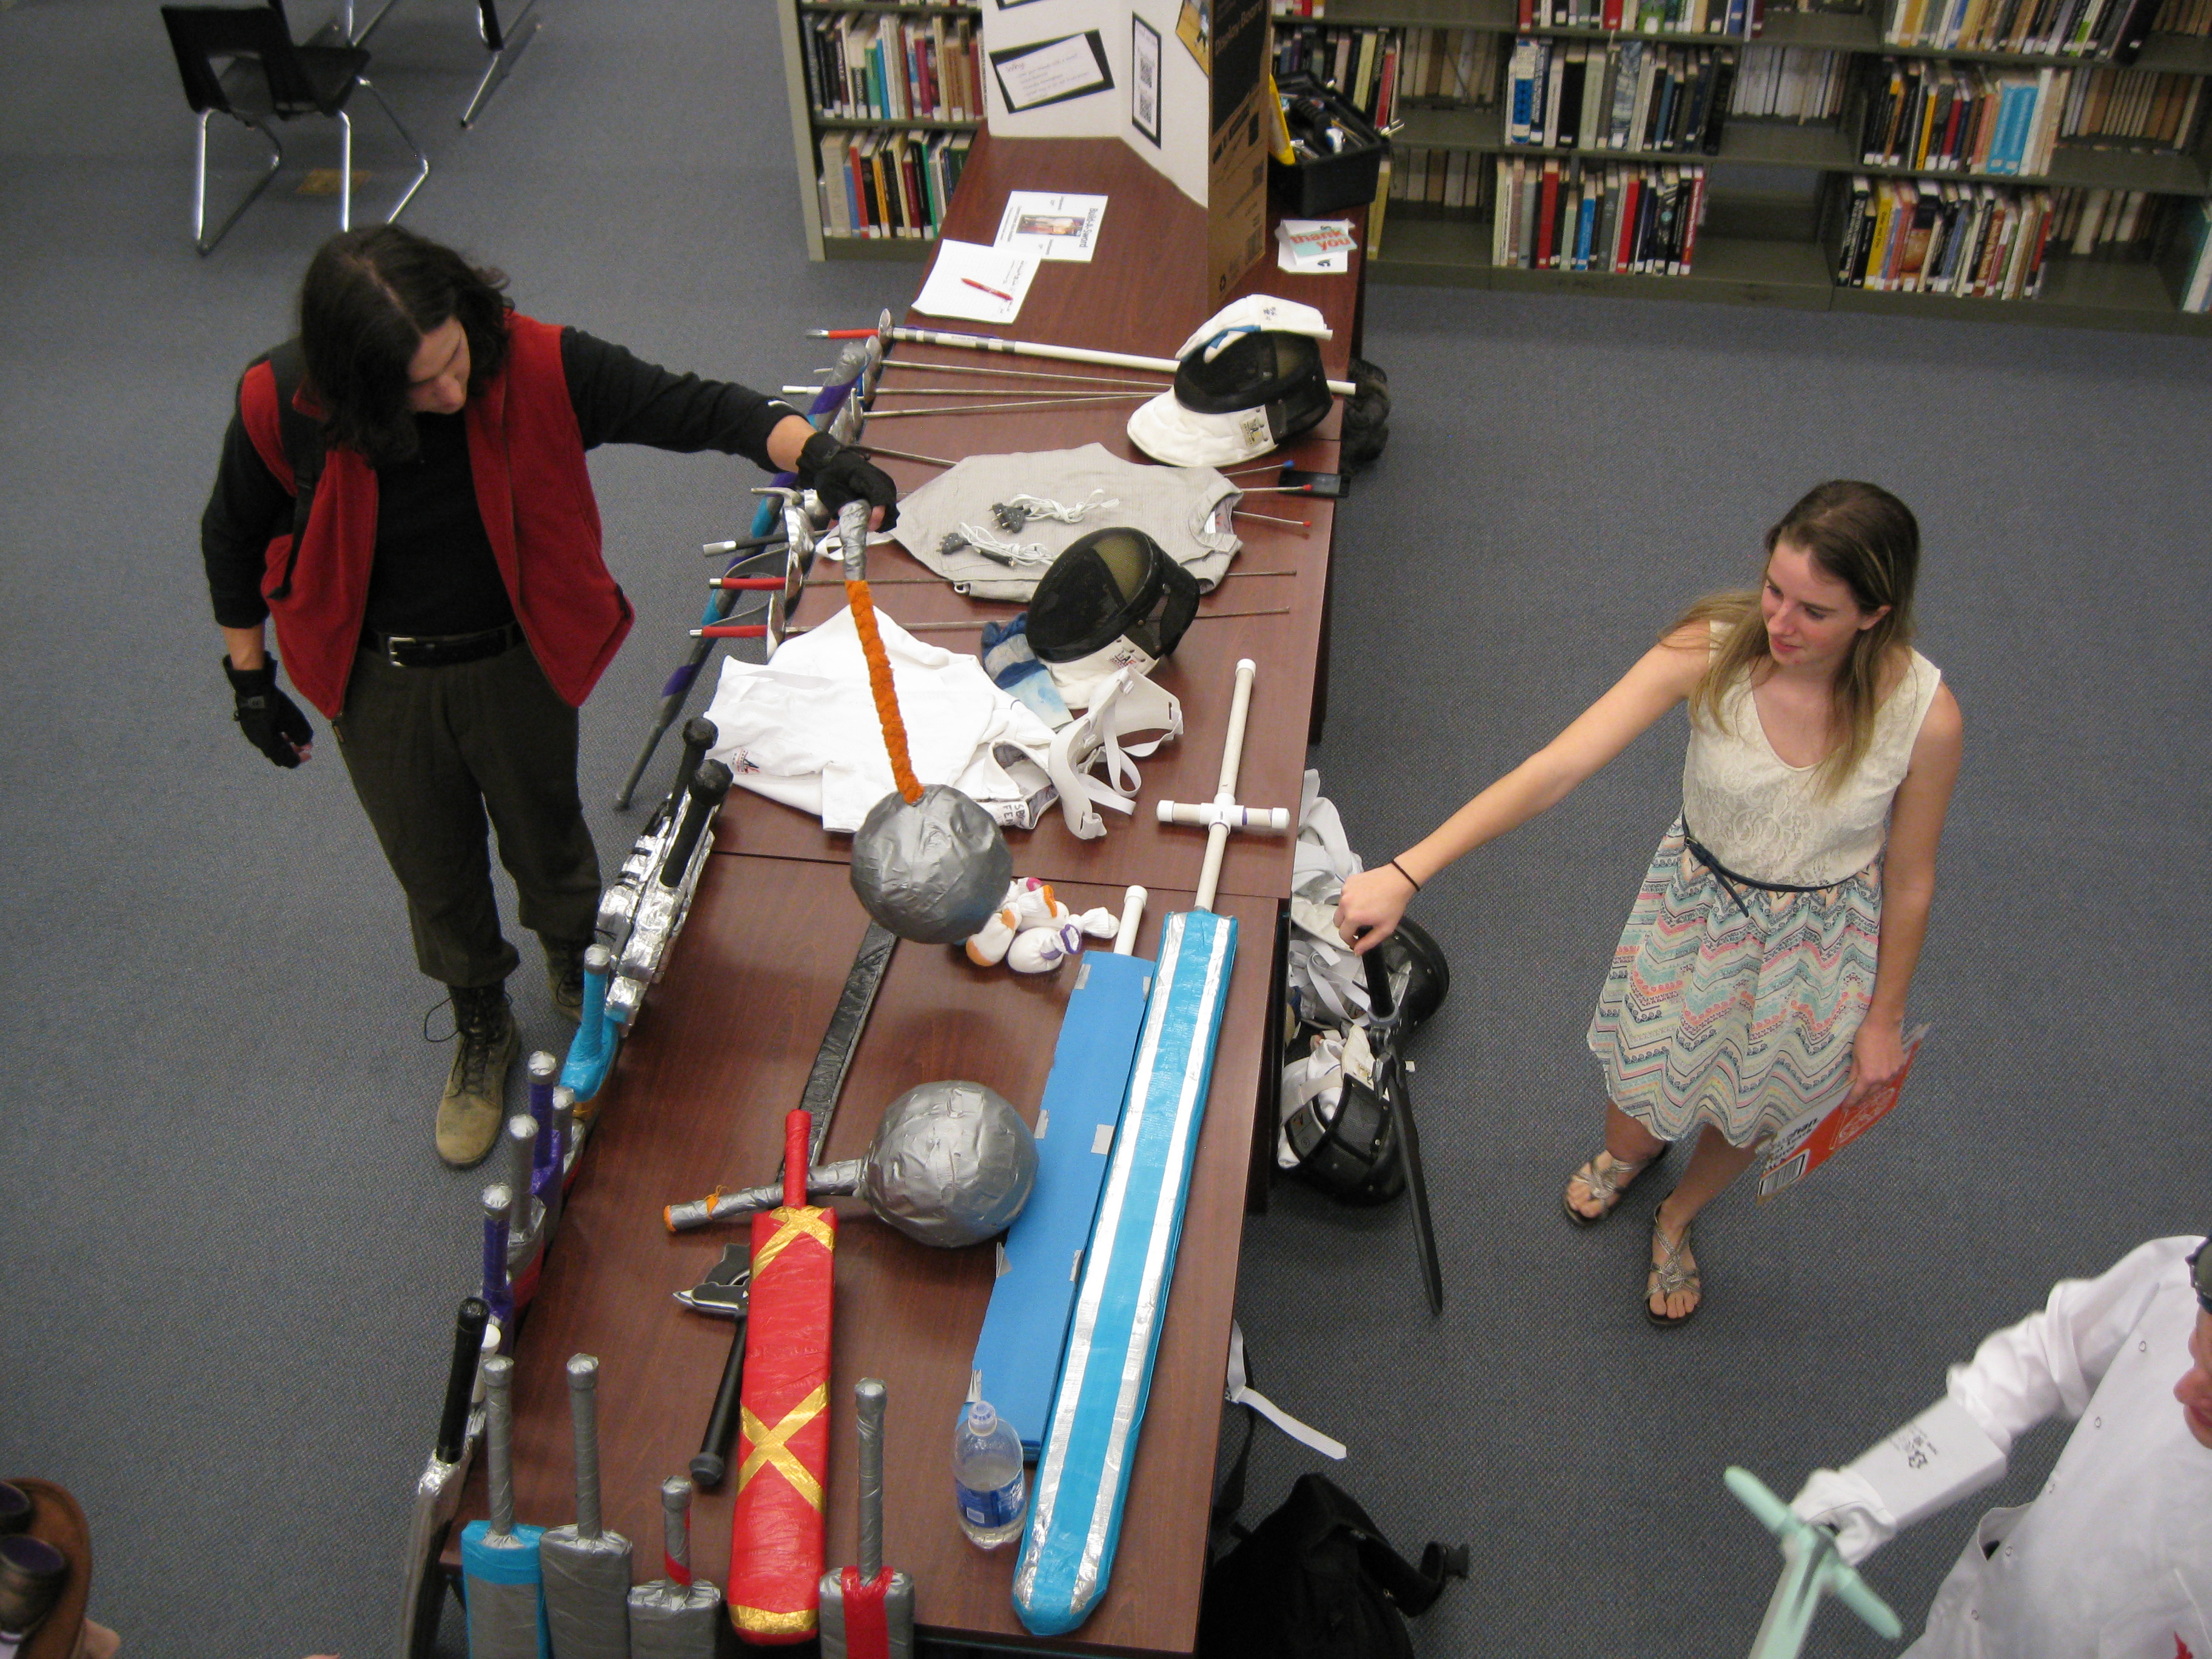 Students with Foam Weapons for Larping -  Hutchens Library, SBU, 2017